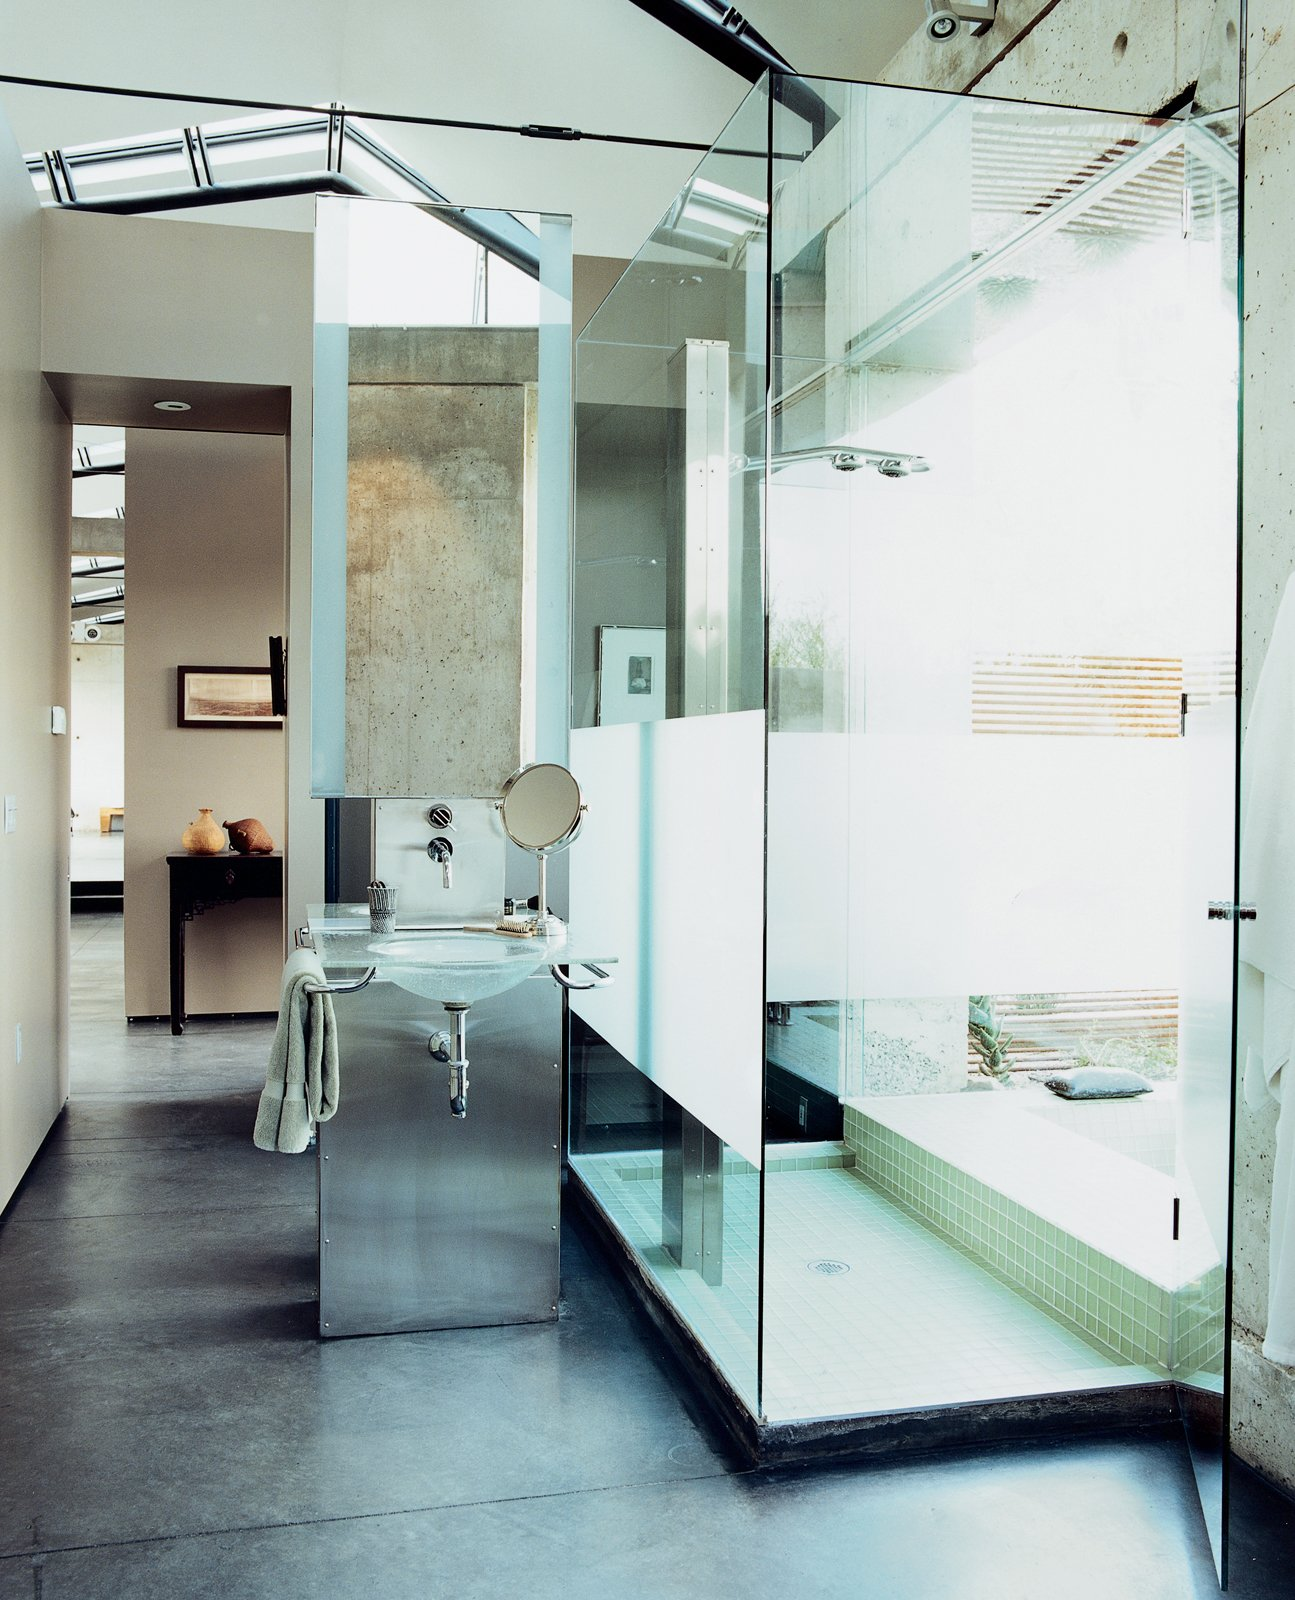 The dramatic bathroom features a glass sink designed and cast by Mies Grybaitis of OIA. The etched glass shower is accented by green glass tile. Love's Labors Found - Photo 11 of 11